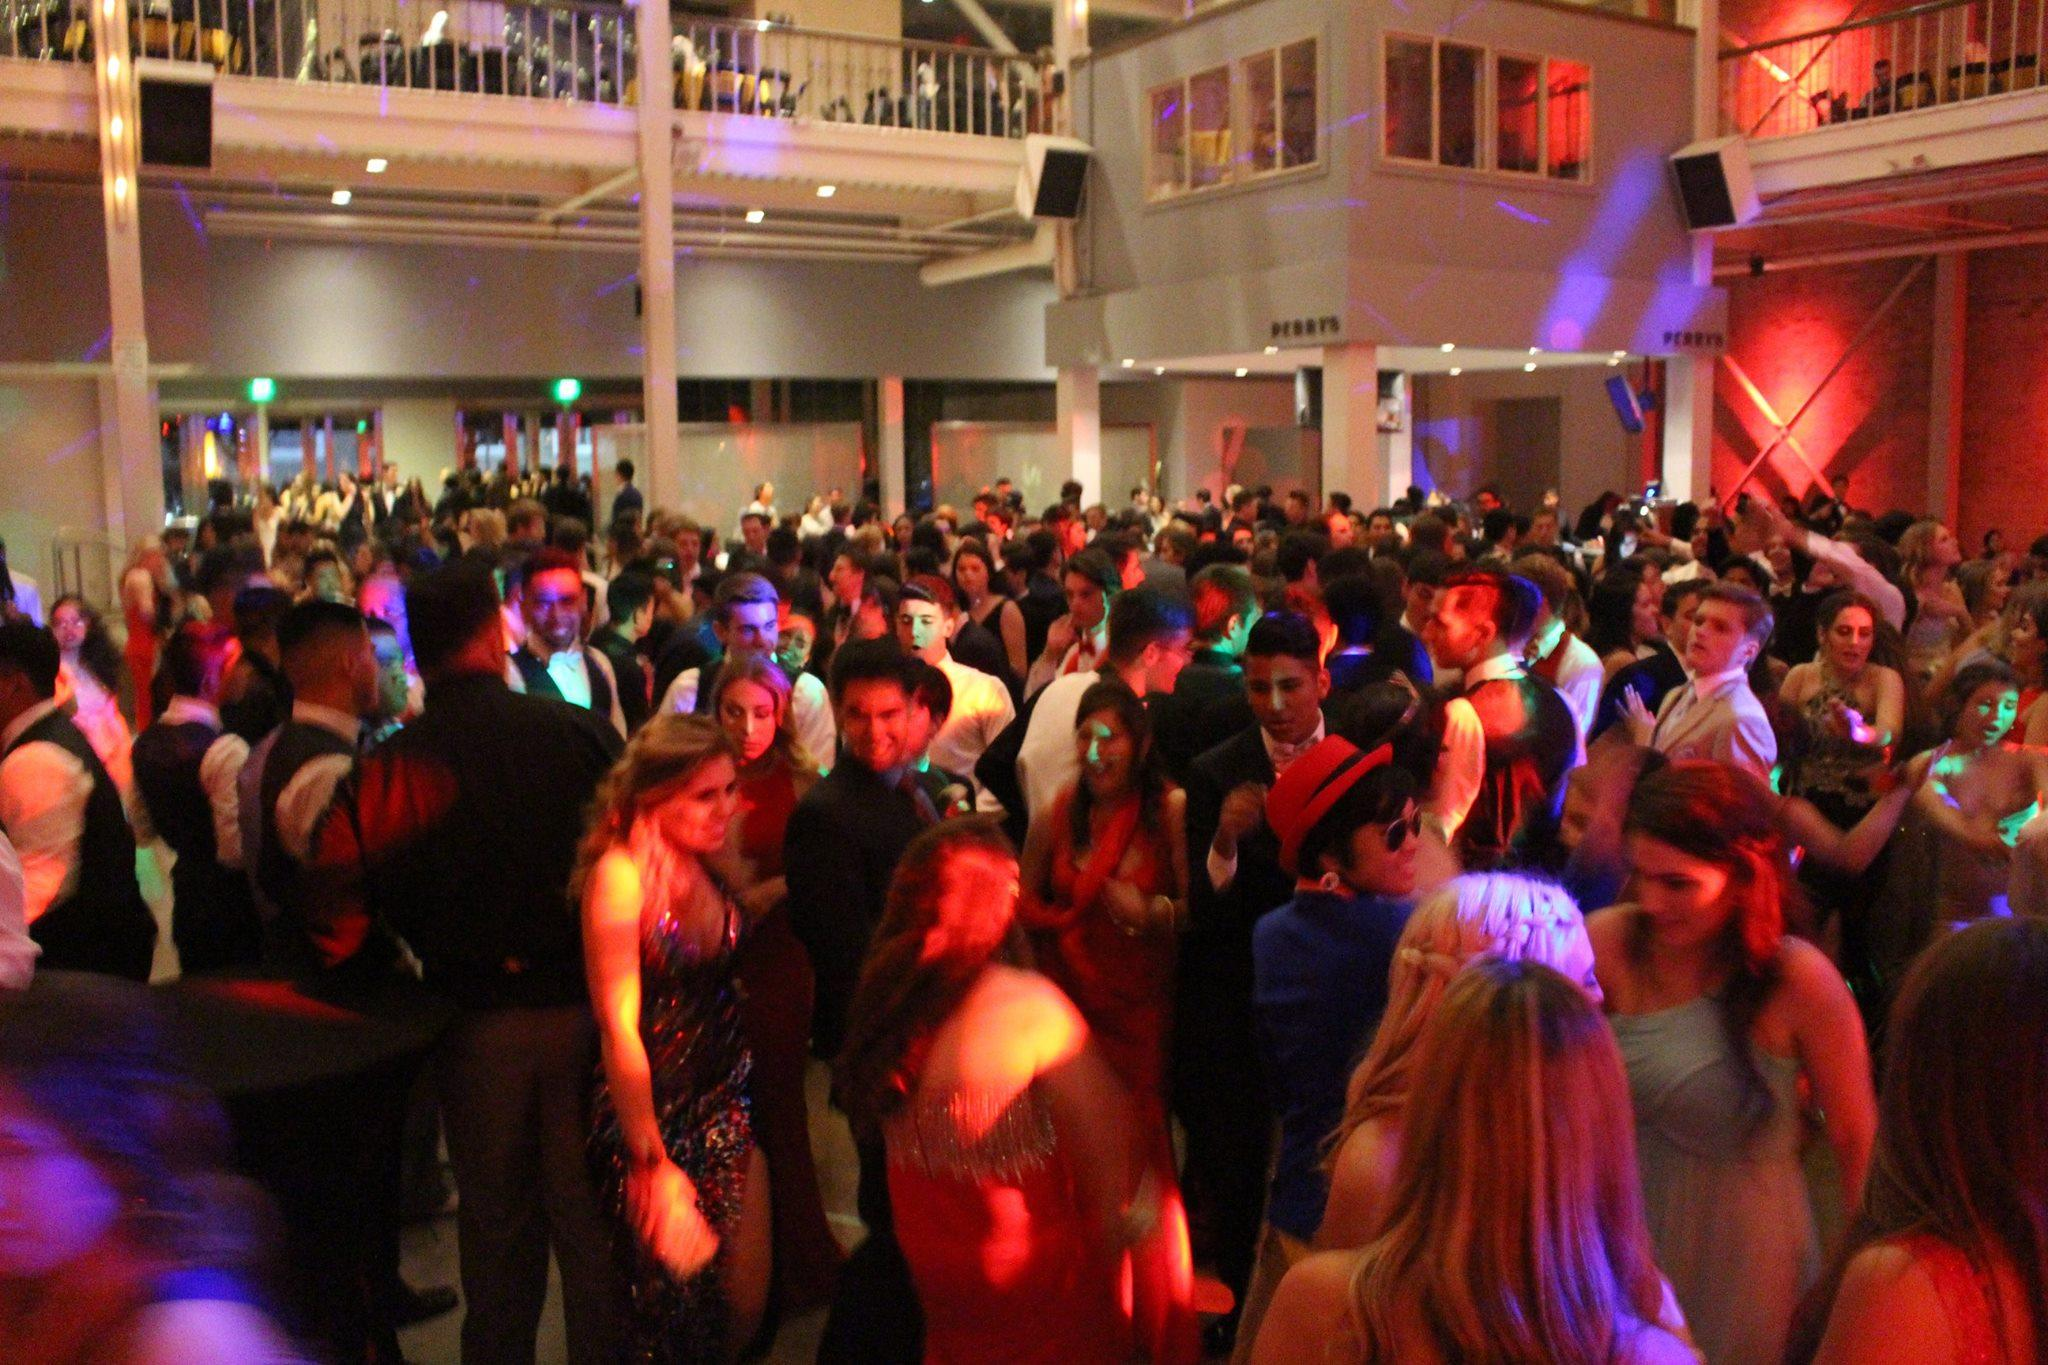 At the 2016 prom, students danced on the dance floor and had the chance to hangout with their friends.